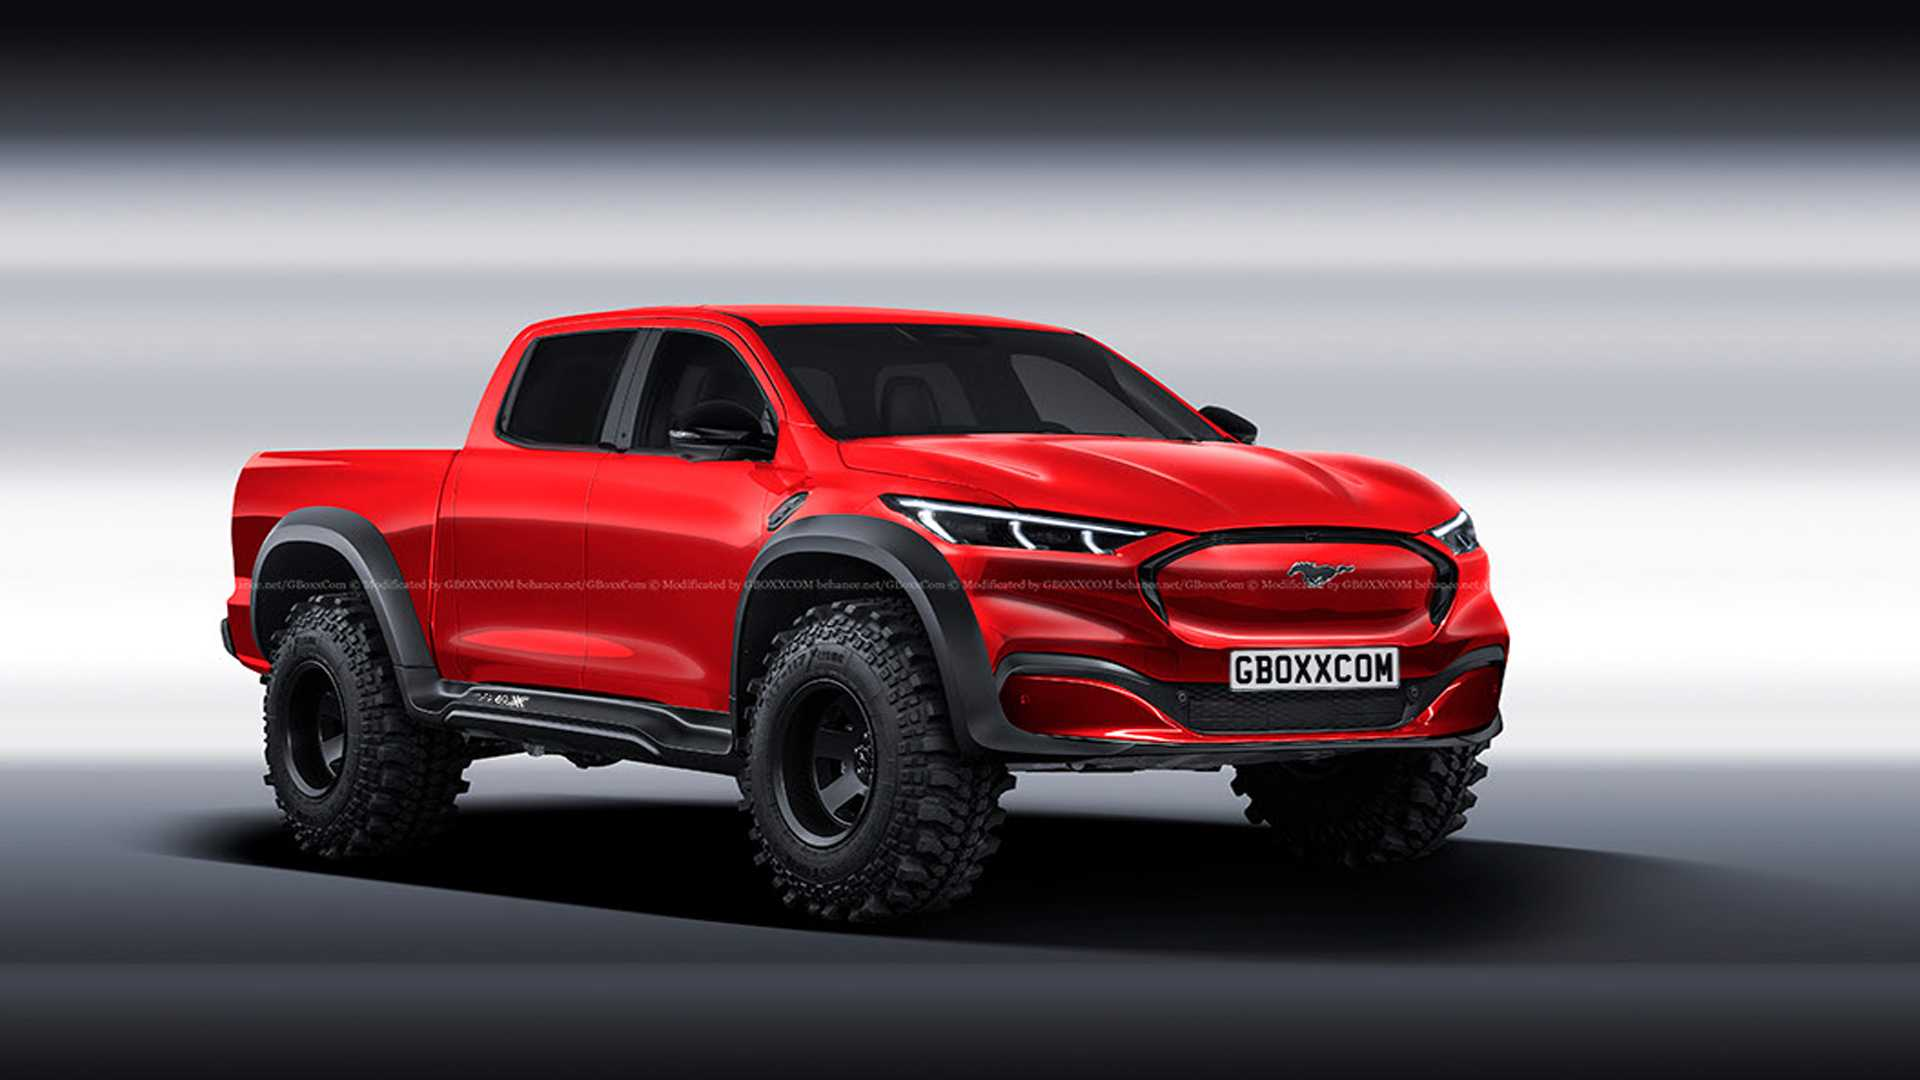 Mustang Mach-E Truck Rendered To Upset Purists Even More